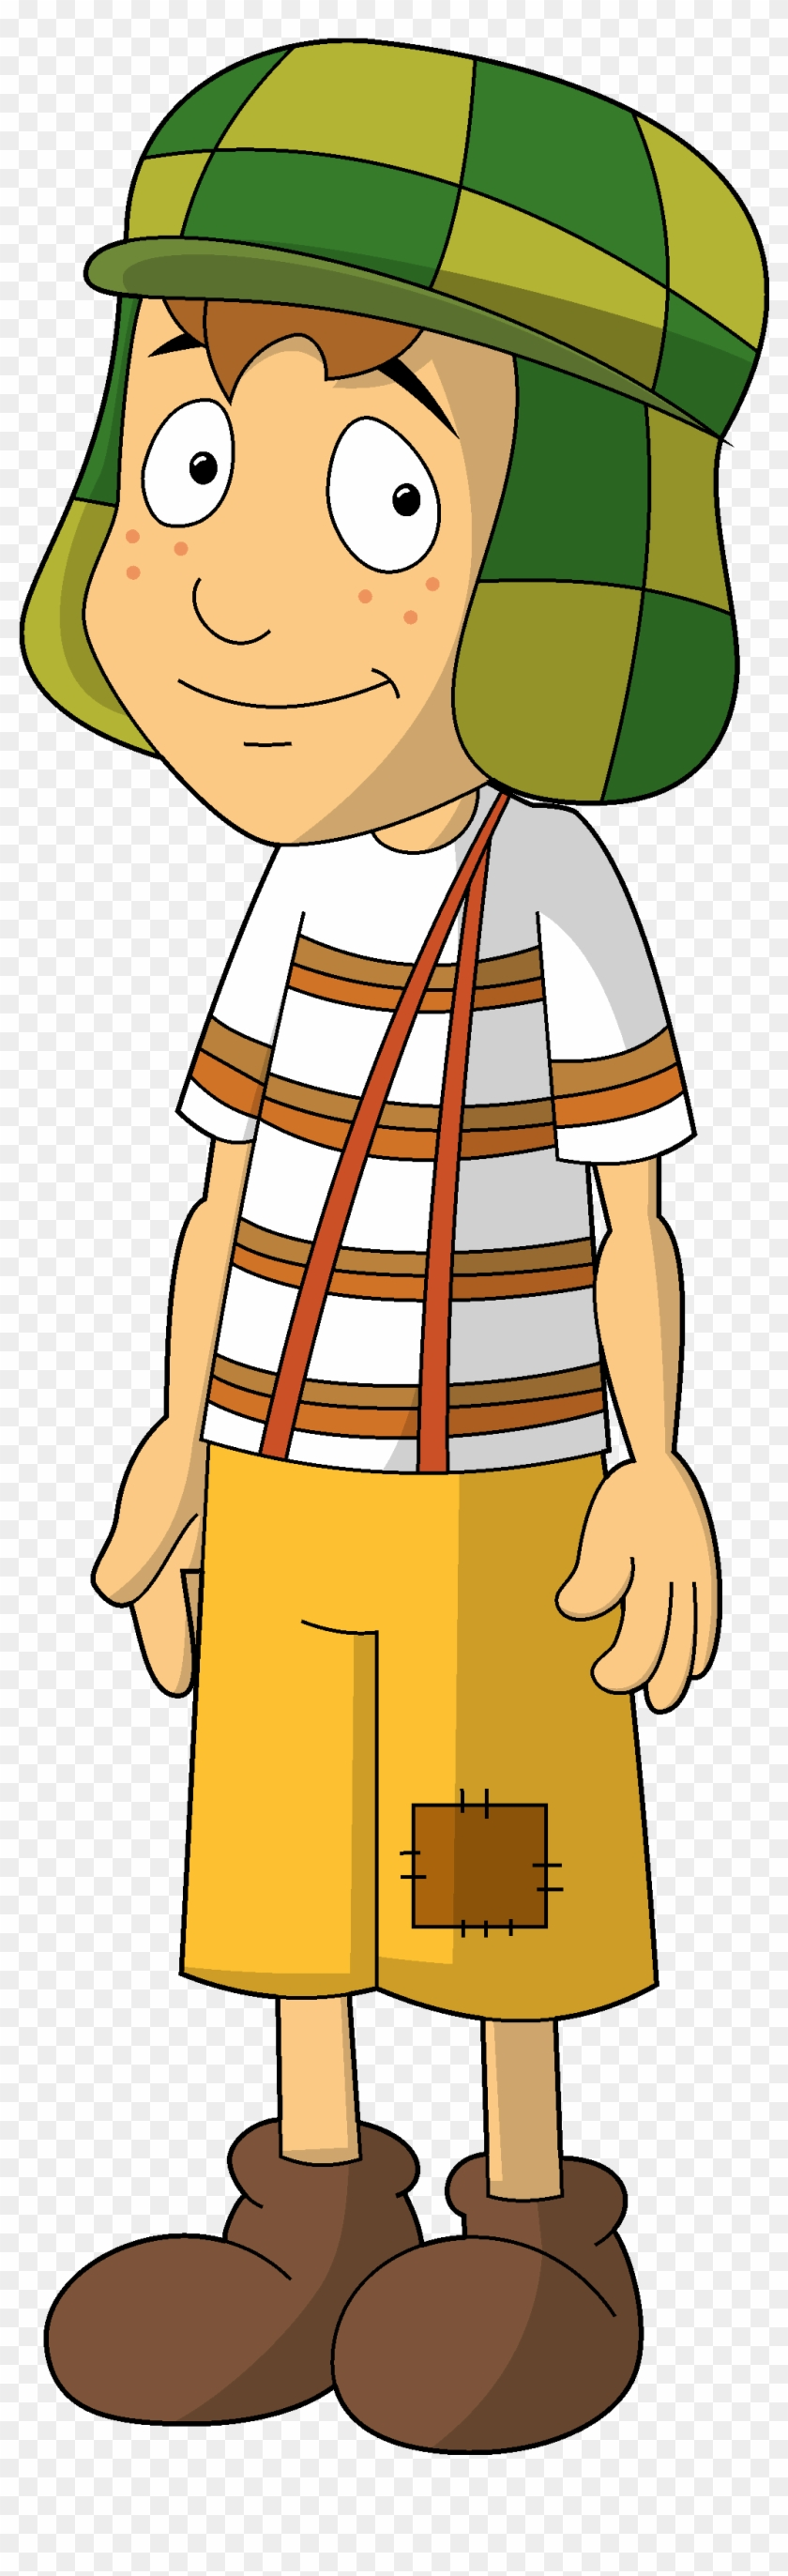 Chaves 01 Chavo Del 8 Animado Free Transparent Png